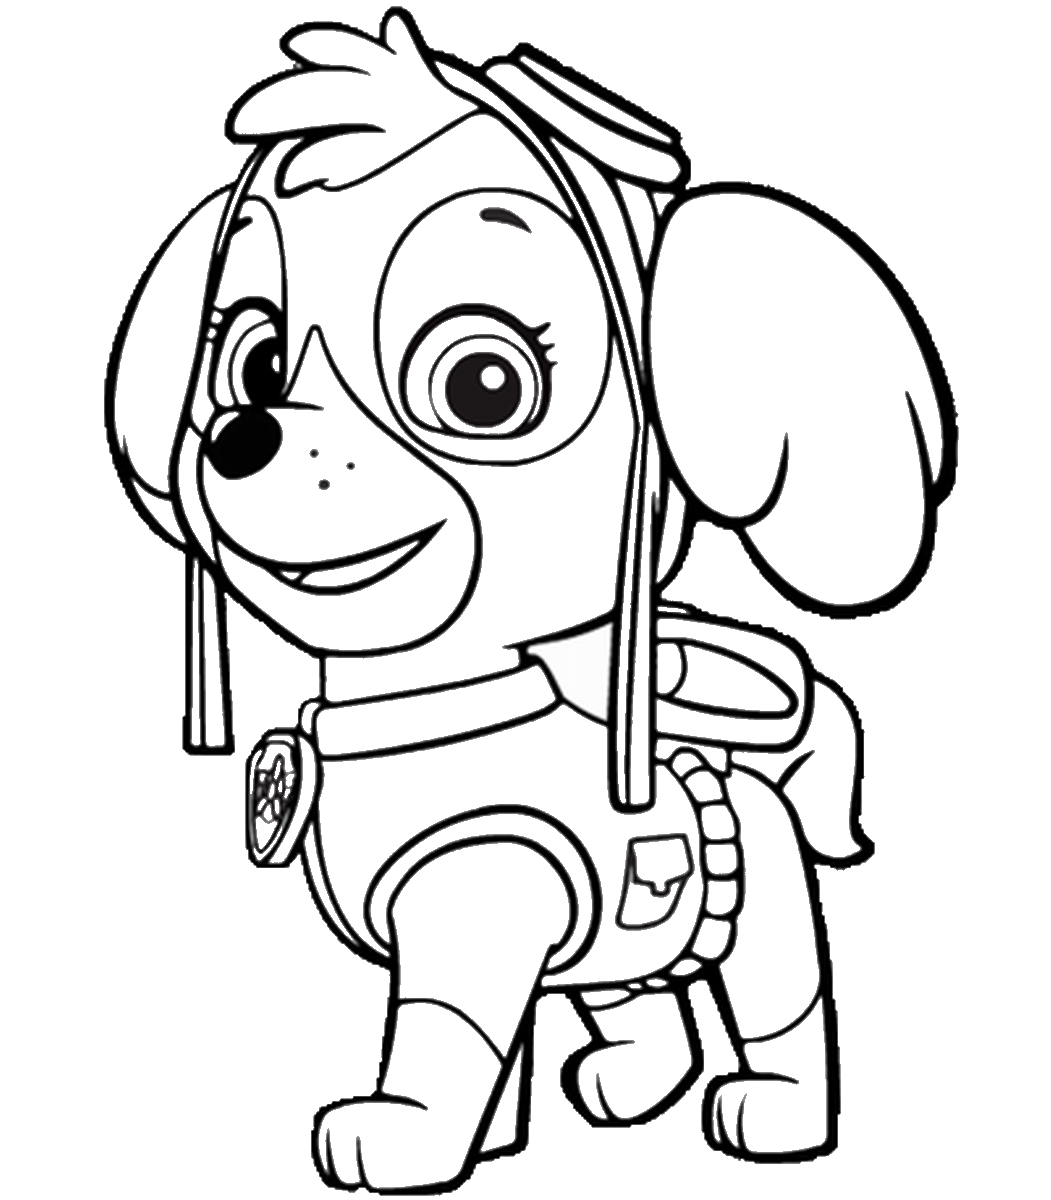 free coloring pages of paw patrol symbol #2619